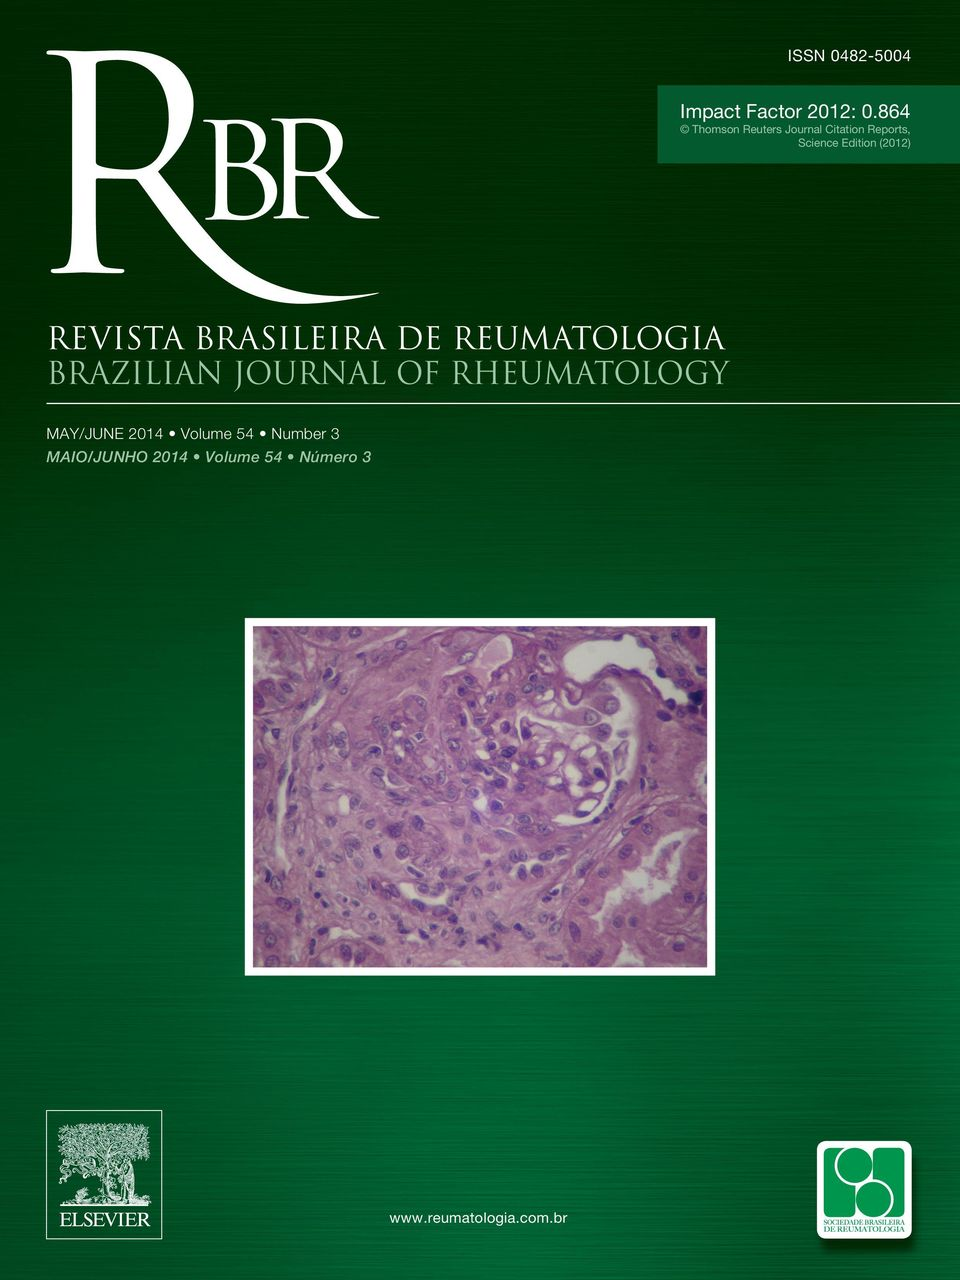 (2012) REVISTA BRASILEIRA DE REUMATOLOGIA BRAZILIAN JOURNAL OF